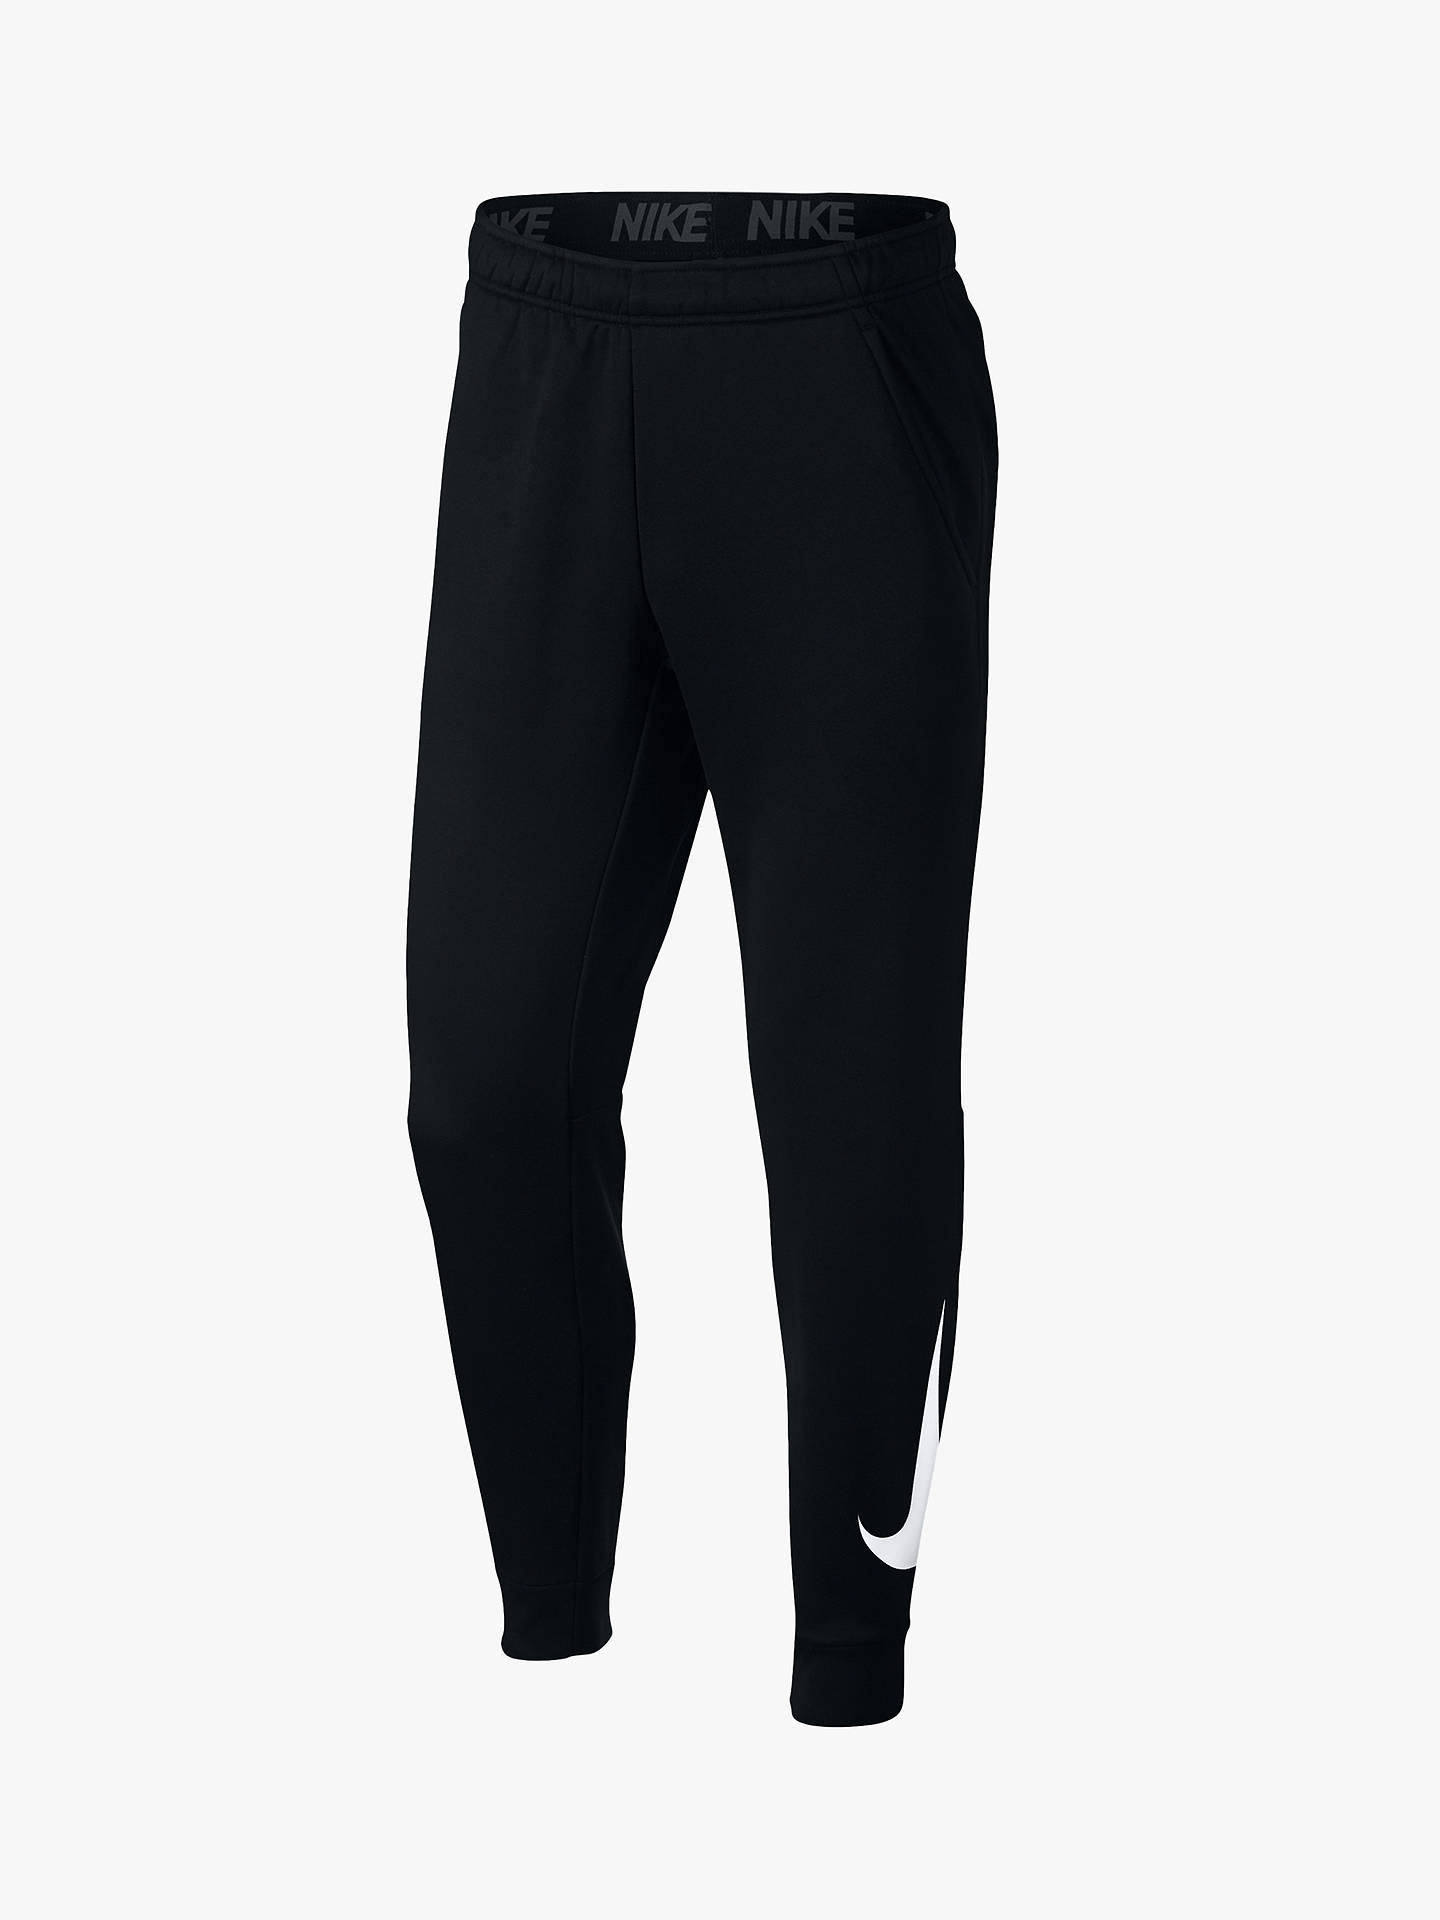 Tracksuits Reebok Cuffed Mens Polyester Training Sports Tracksuit Suit Set Black/white Non-Ironing